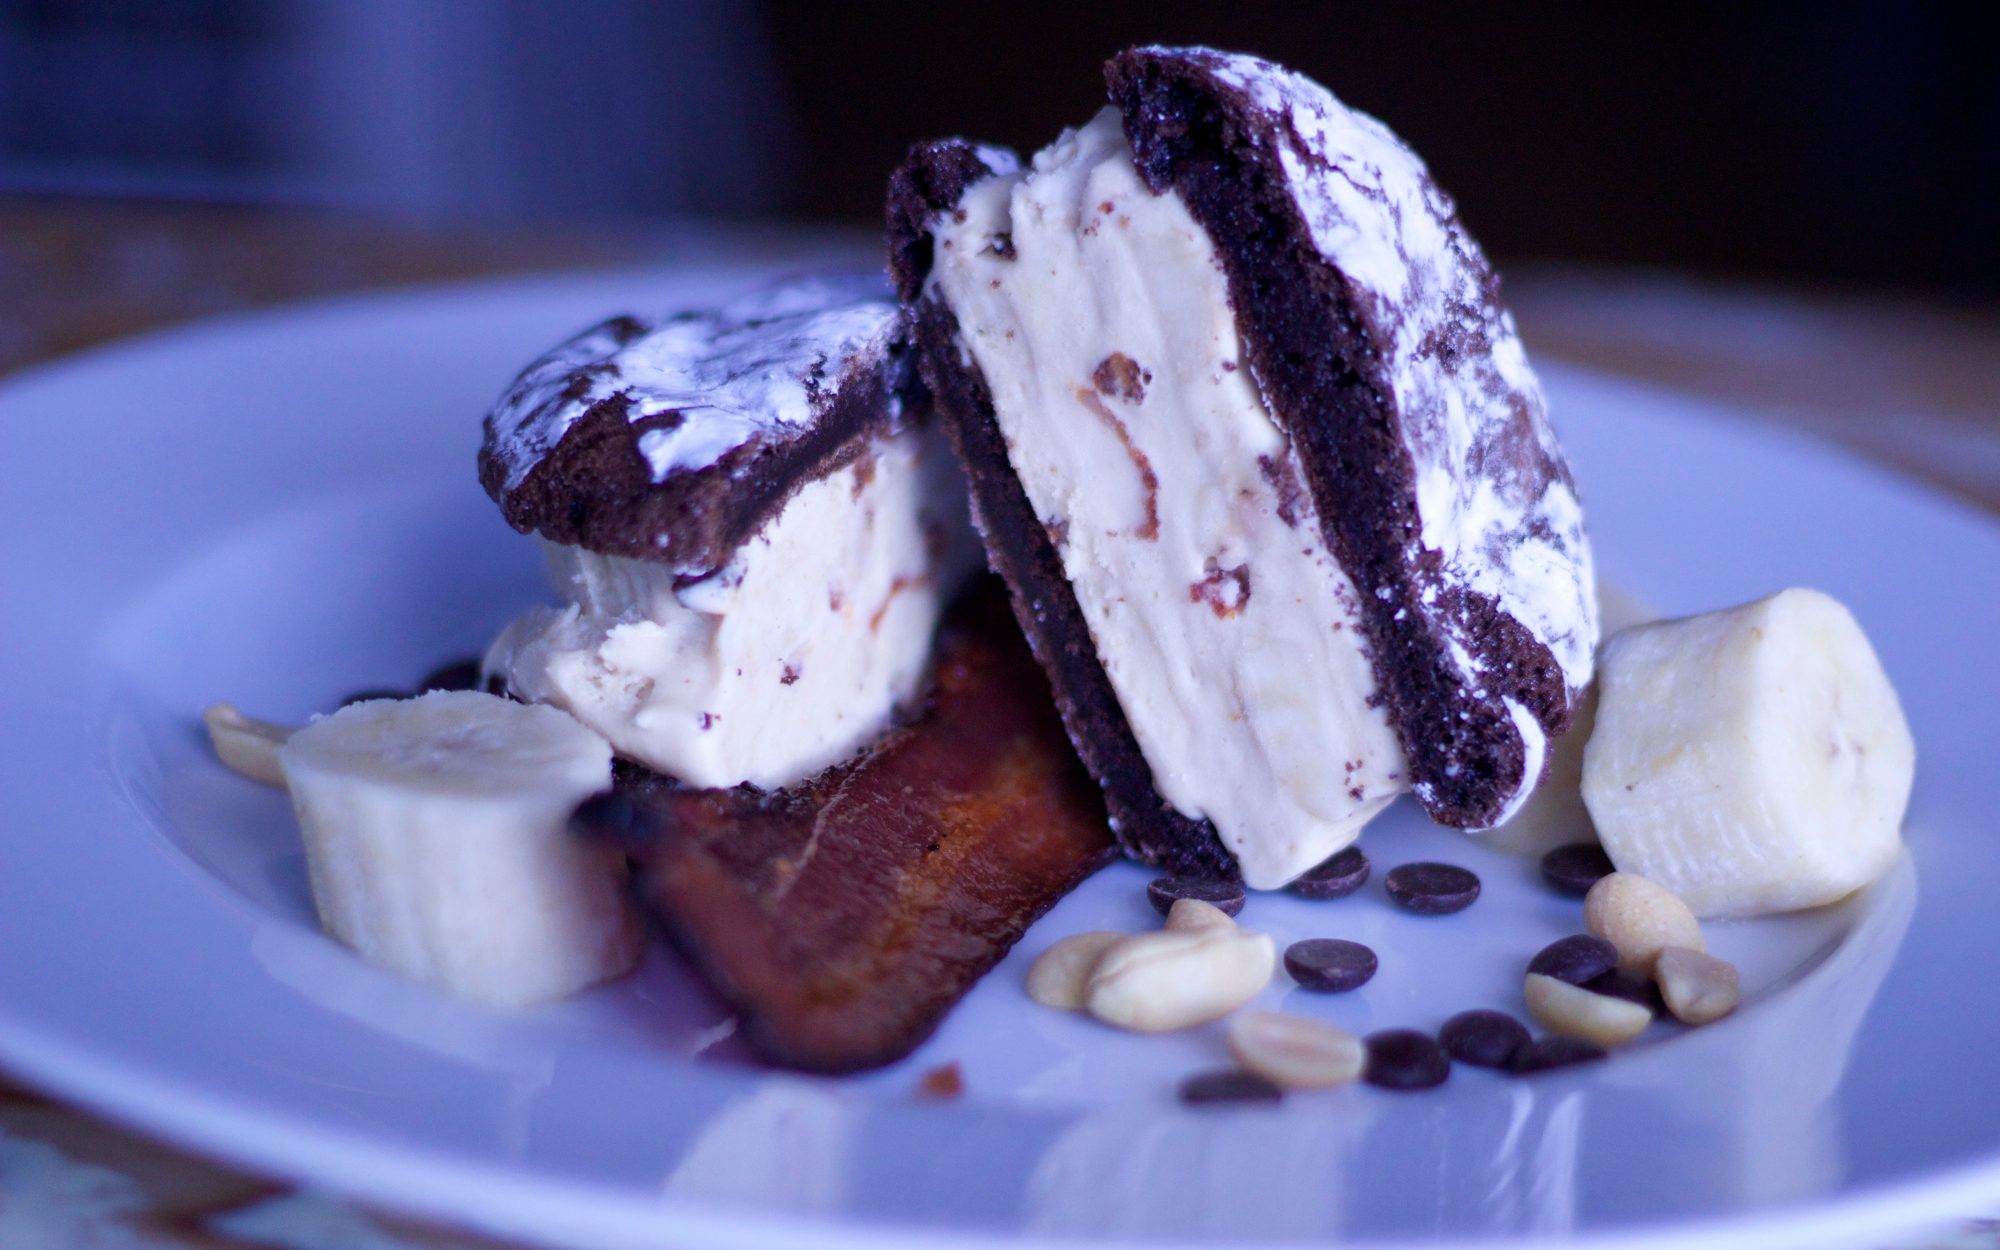 Outlandish Ice Cream Sandwiches to Eat This Summer: Sugarmill in Denver